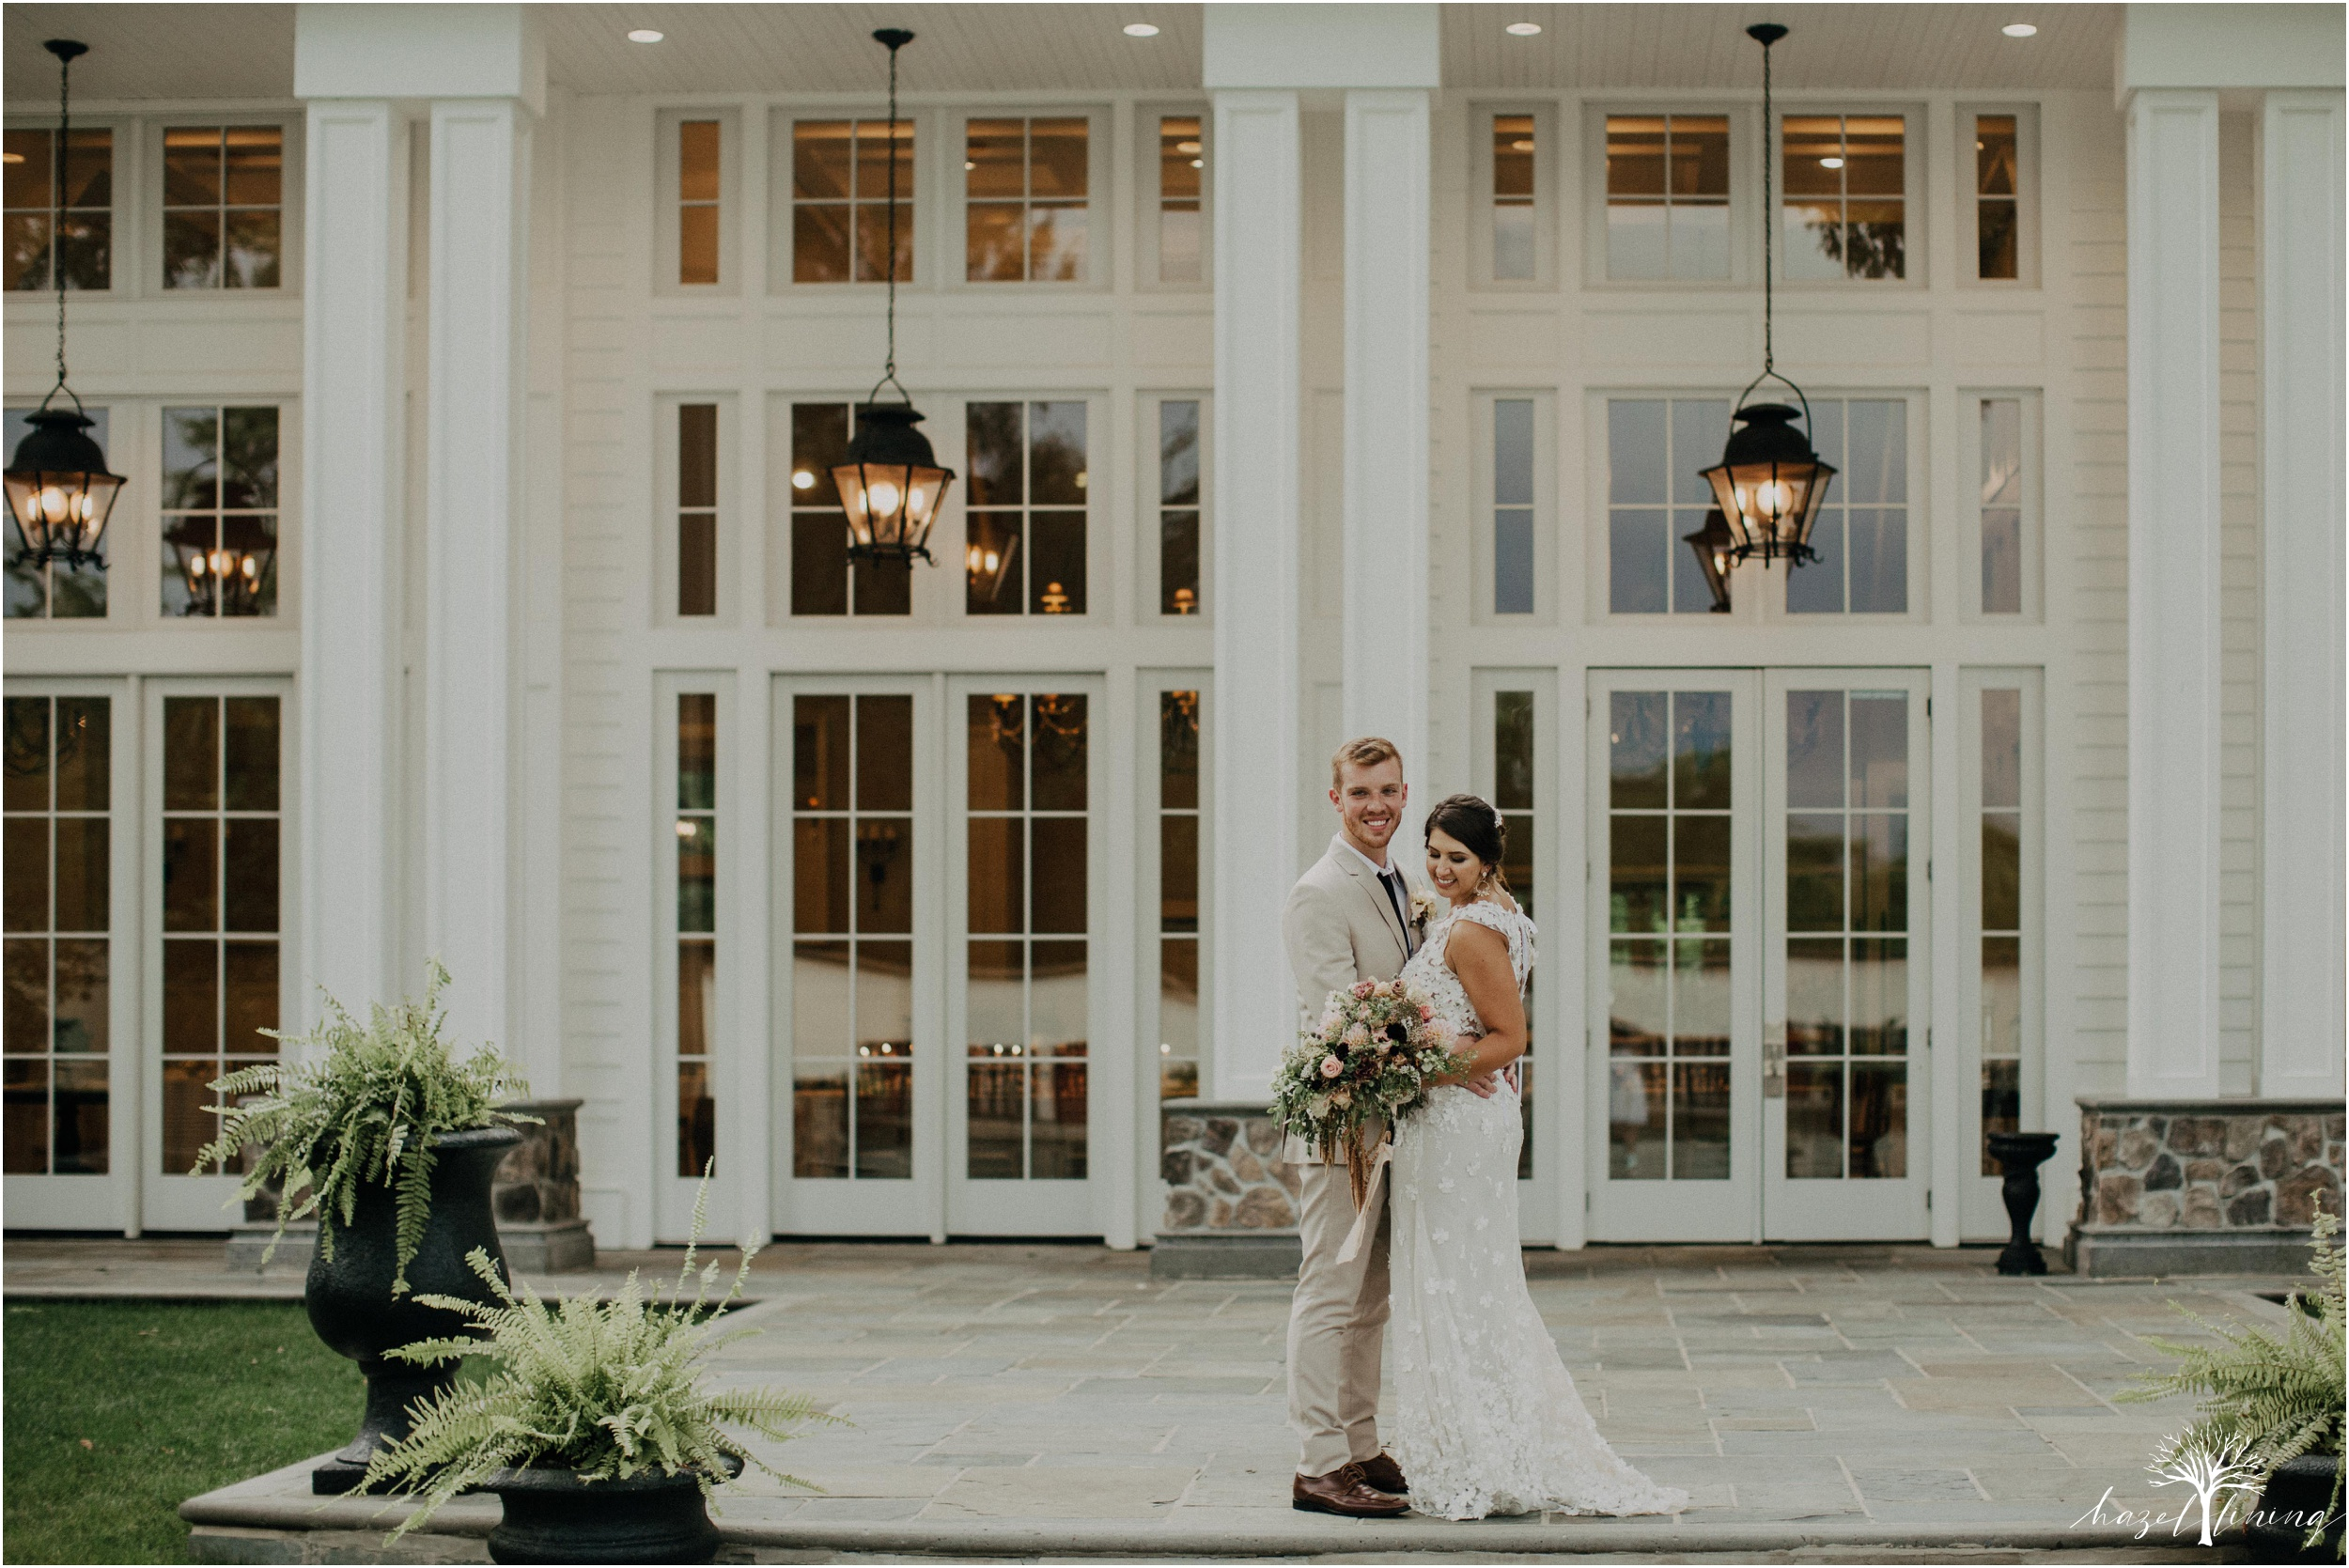 carl-chloe-the-ryland-inn-whitehouse-station-new-jersey-styled-squad-hazel-lining-photography-destination-elopement-wedding-engagement-photography_0041.jpg